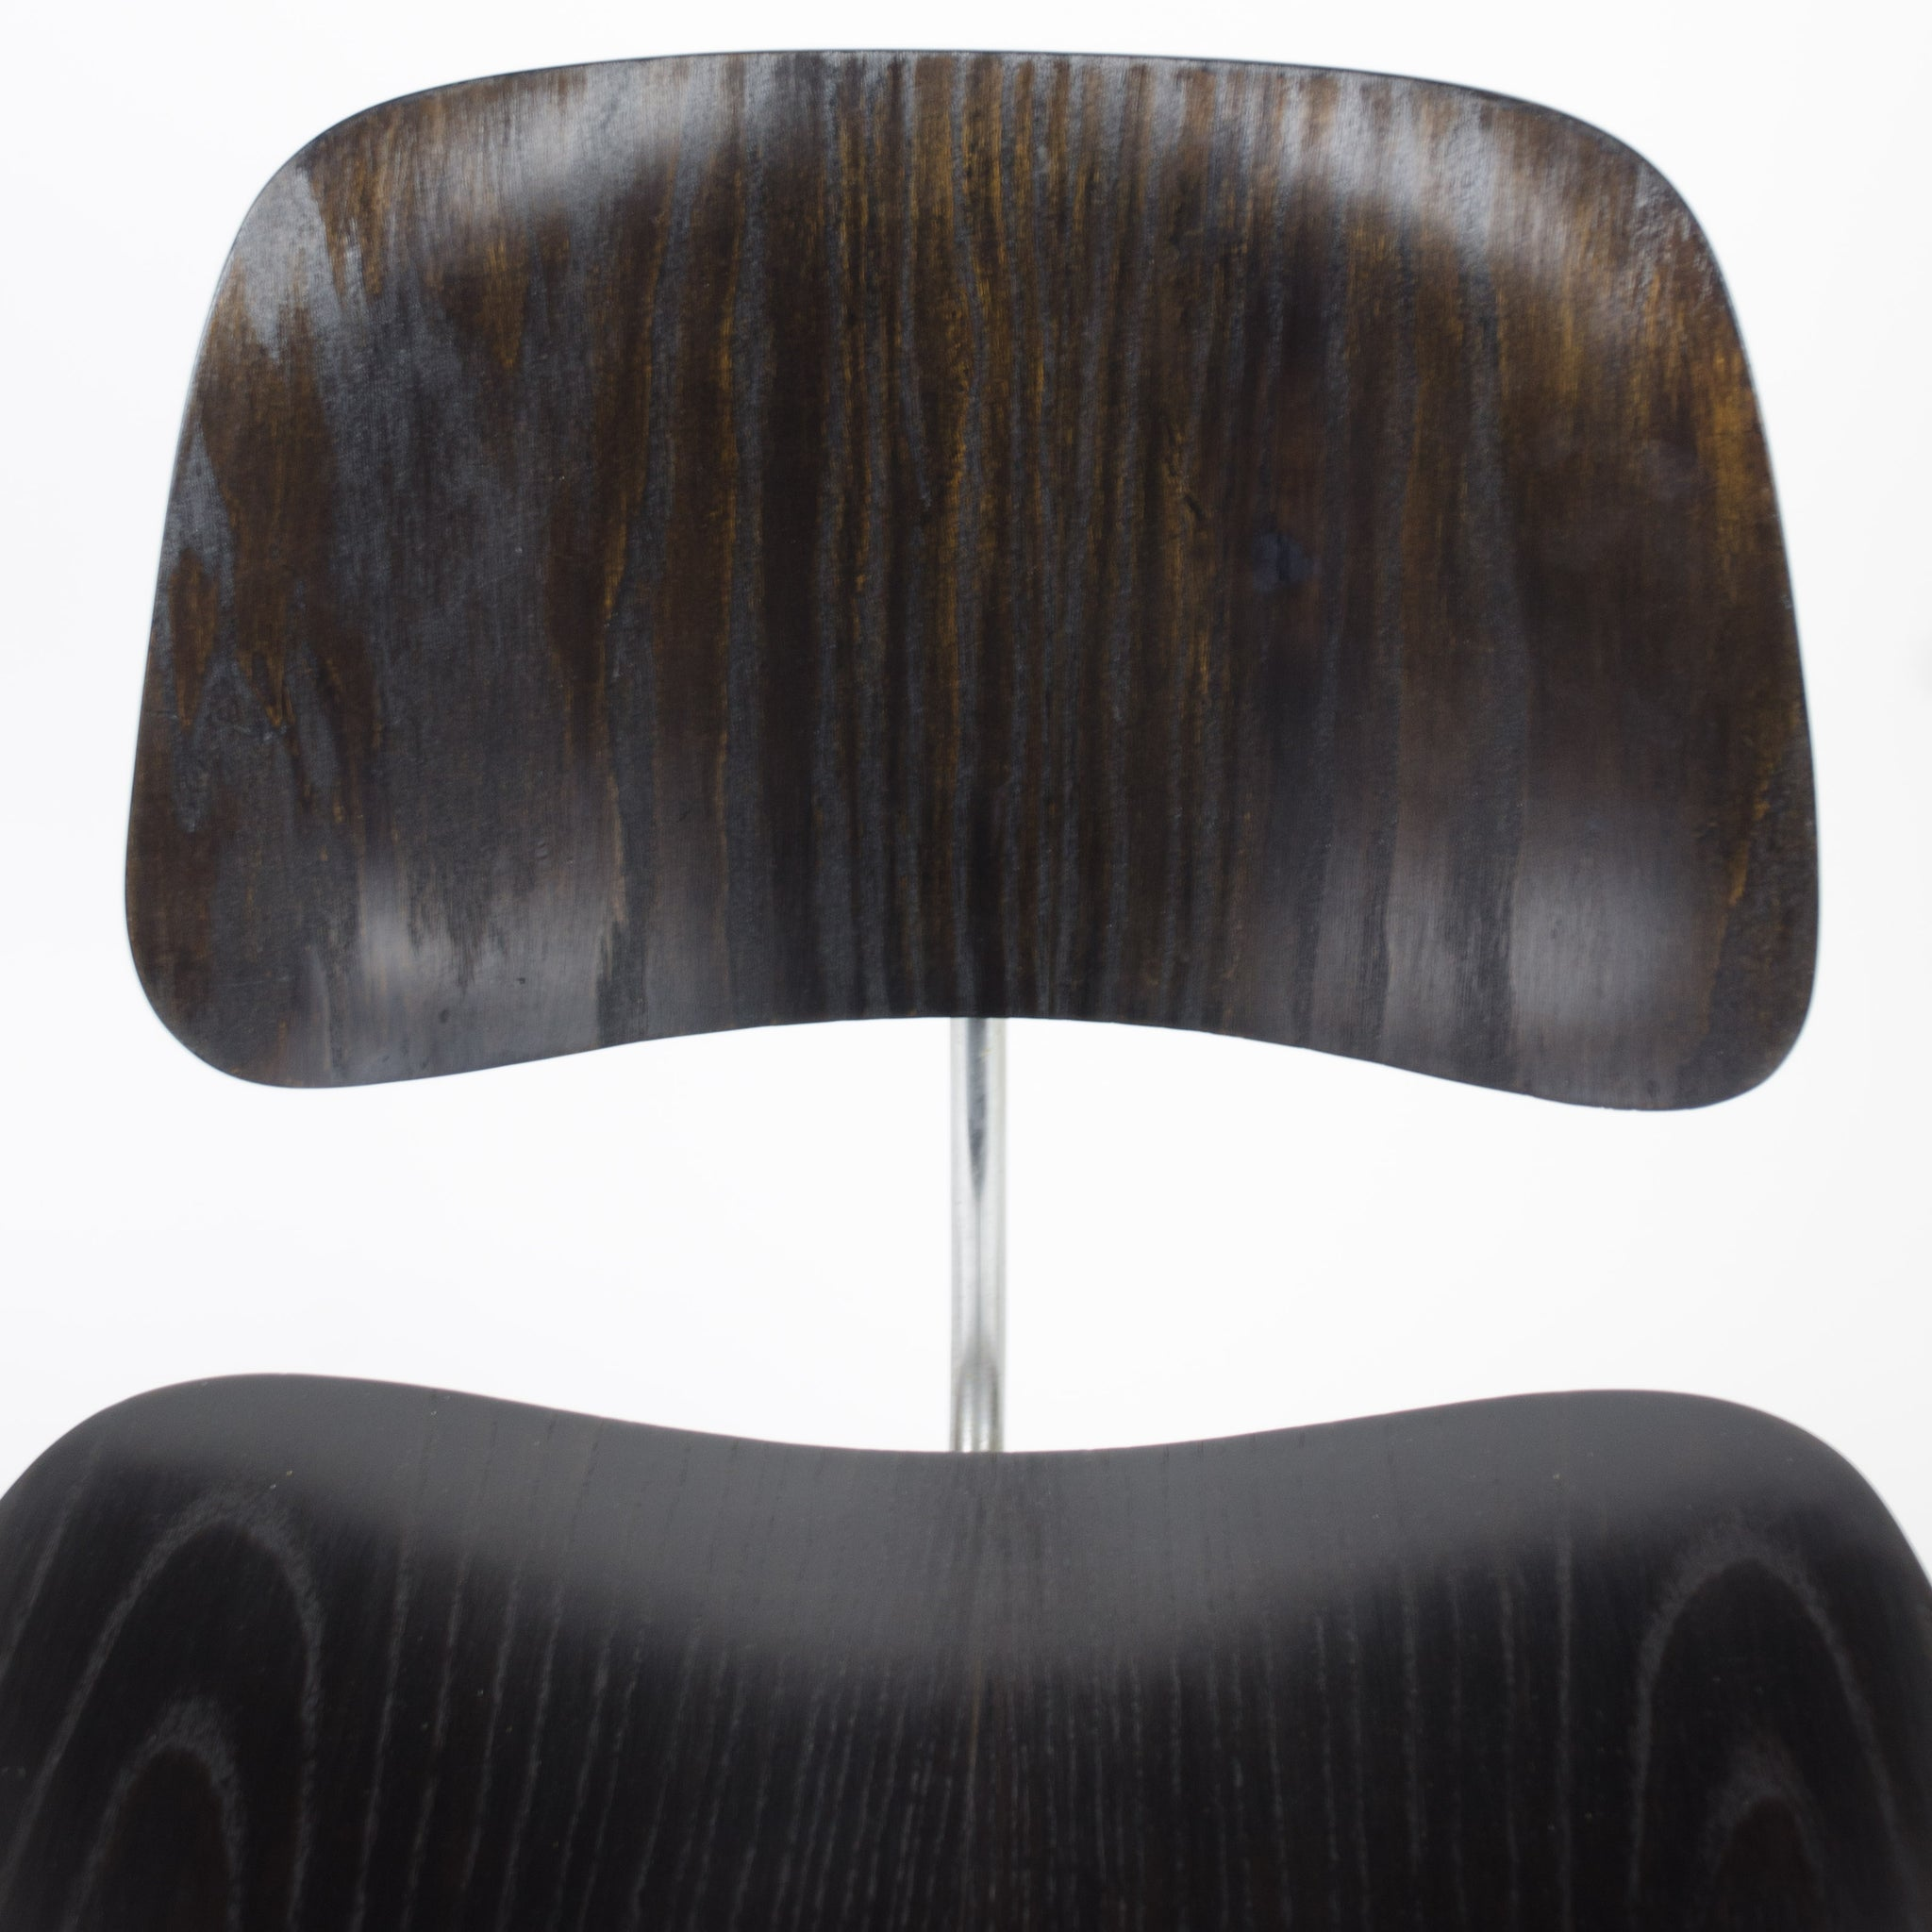 SOLD Eames Evans Herman Miller 1946 DCM Dining Chairs Black Aniline Dye Set of 4 RARE